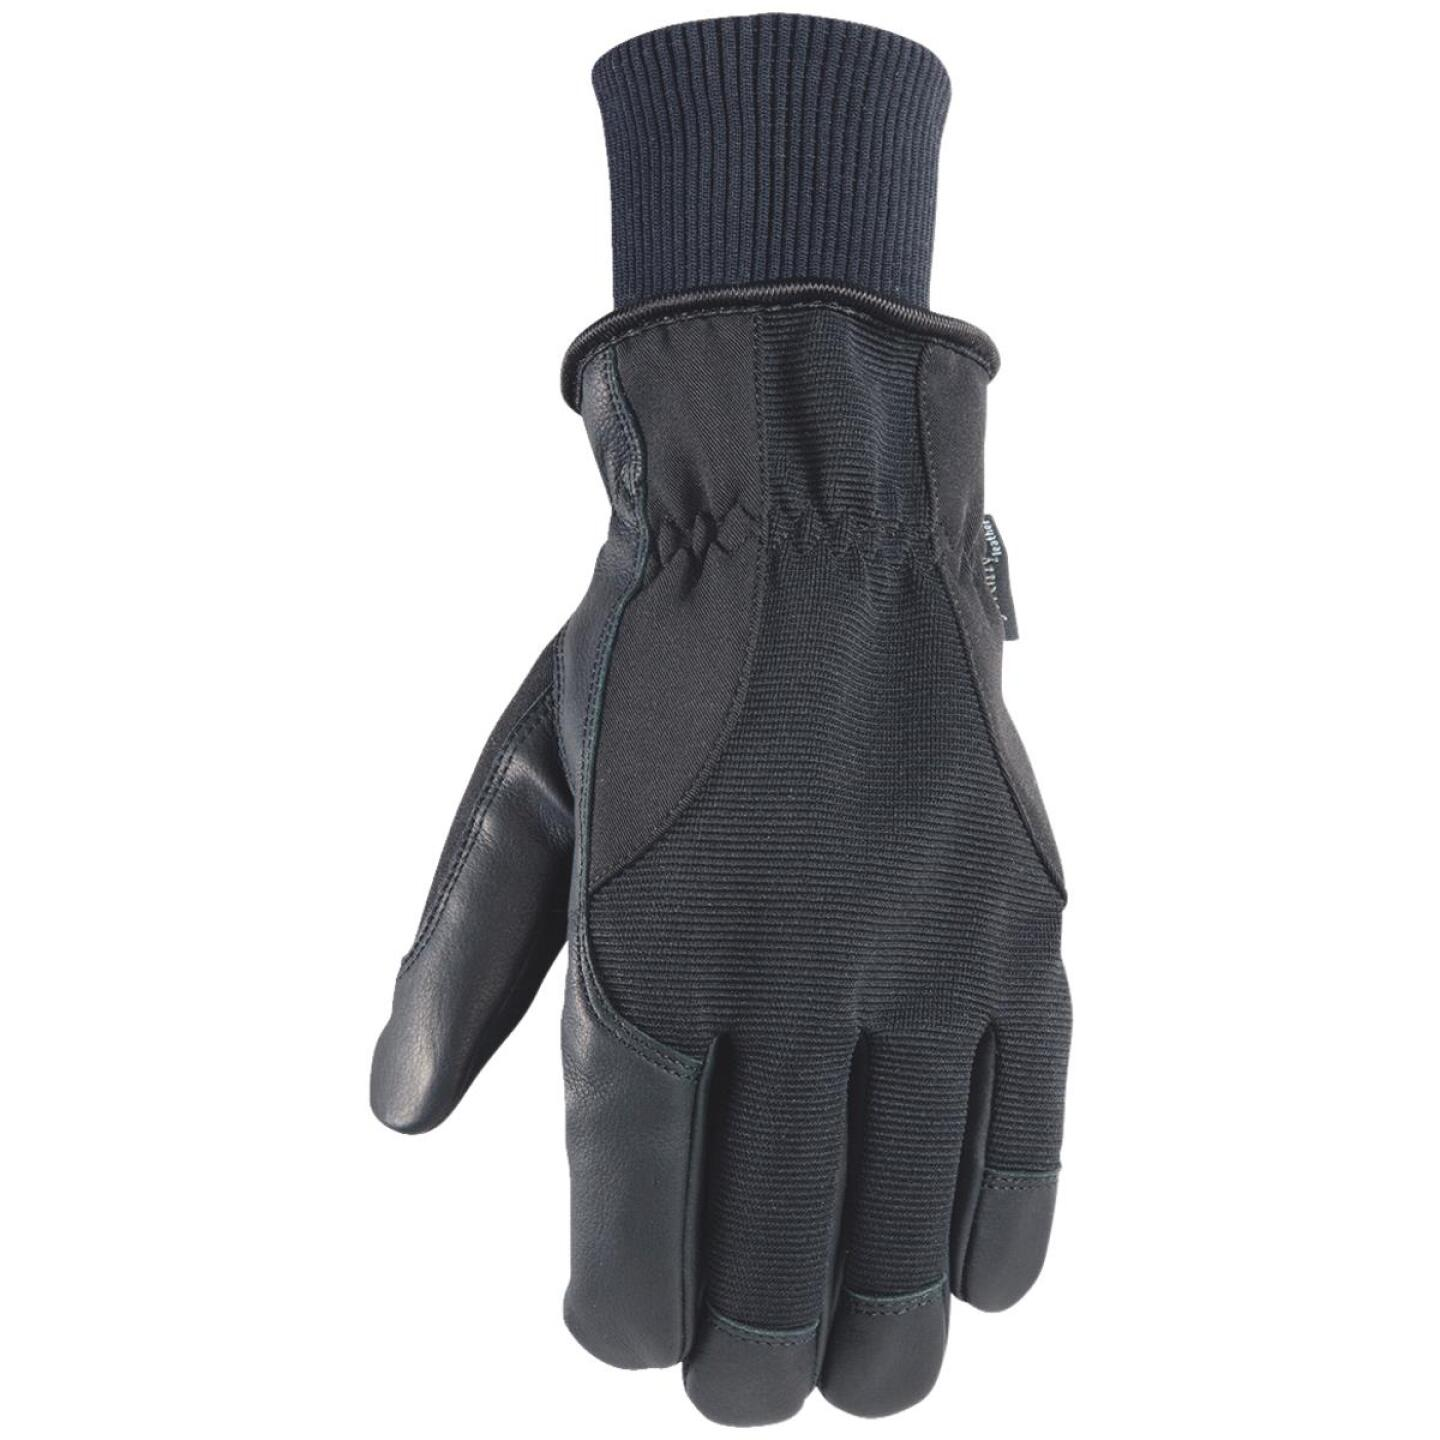 Wells Lamont HydraHyde Men's Large Grain Goatskin Black Insulated Work Glove Image 1